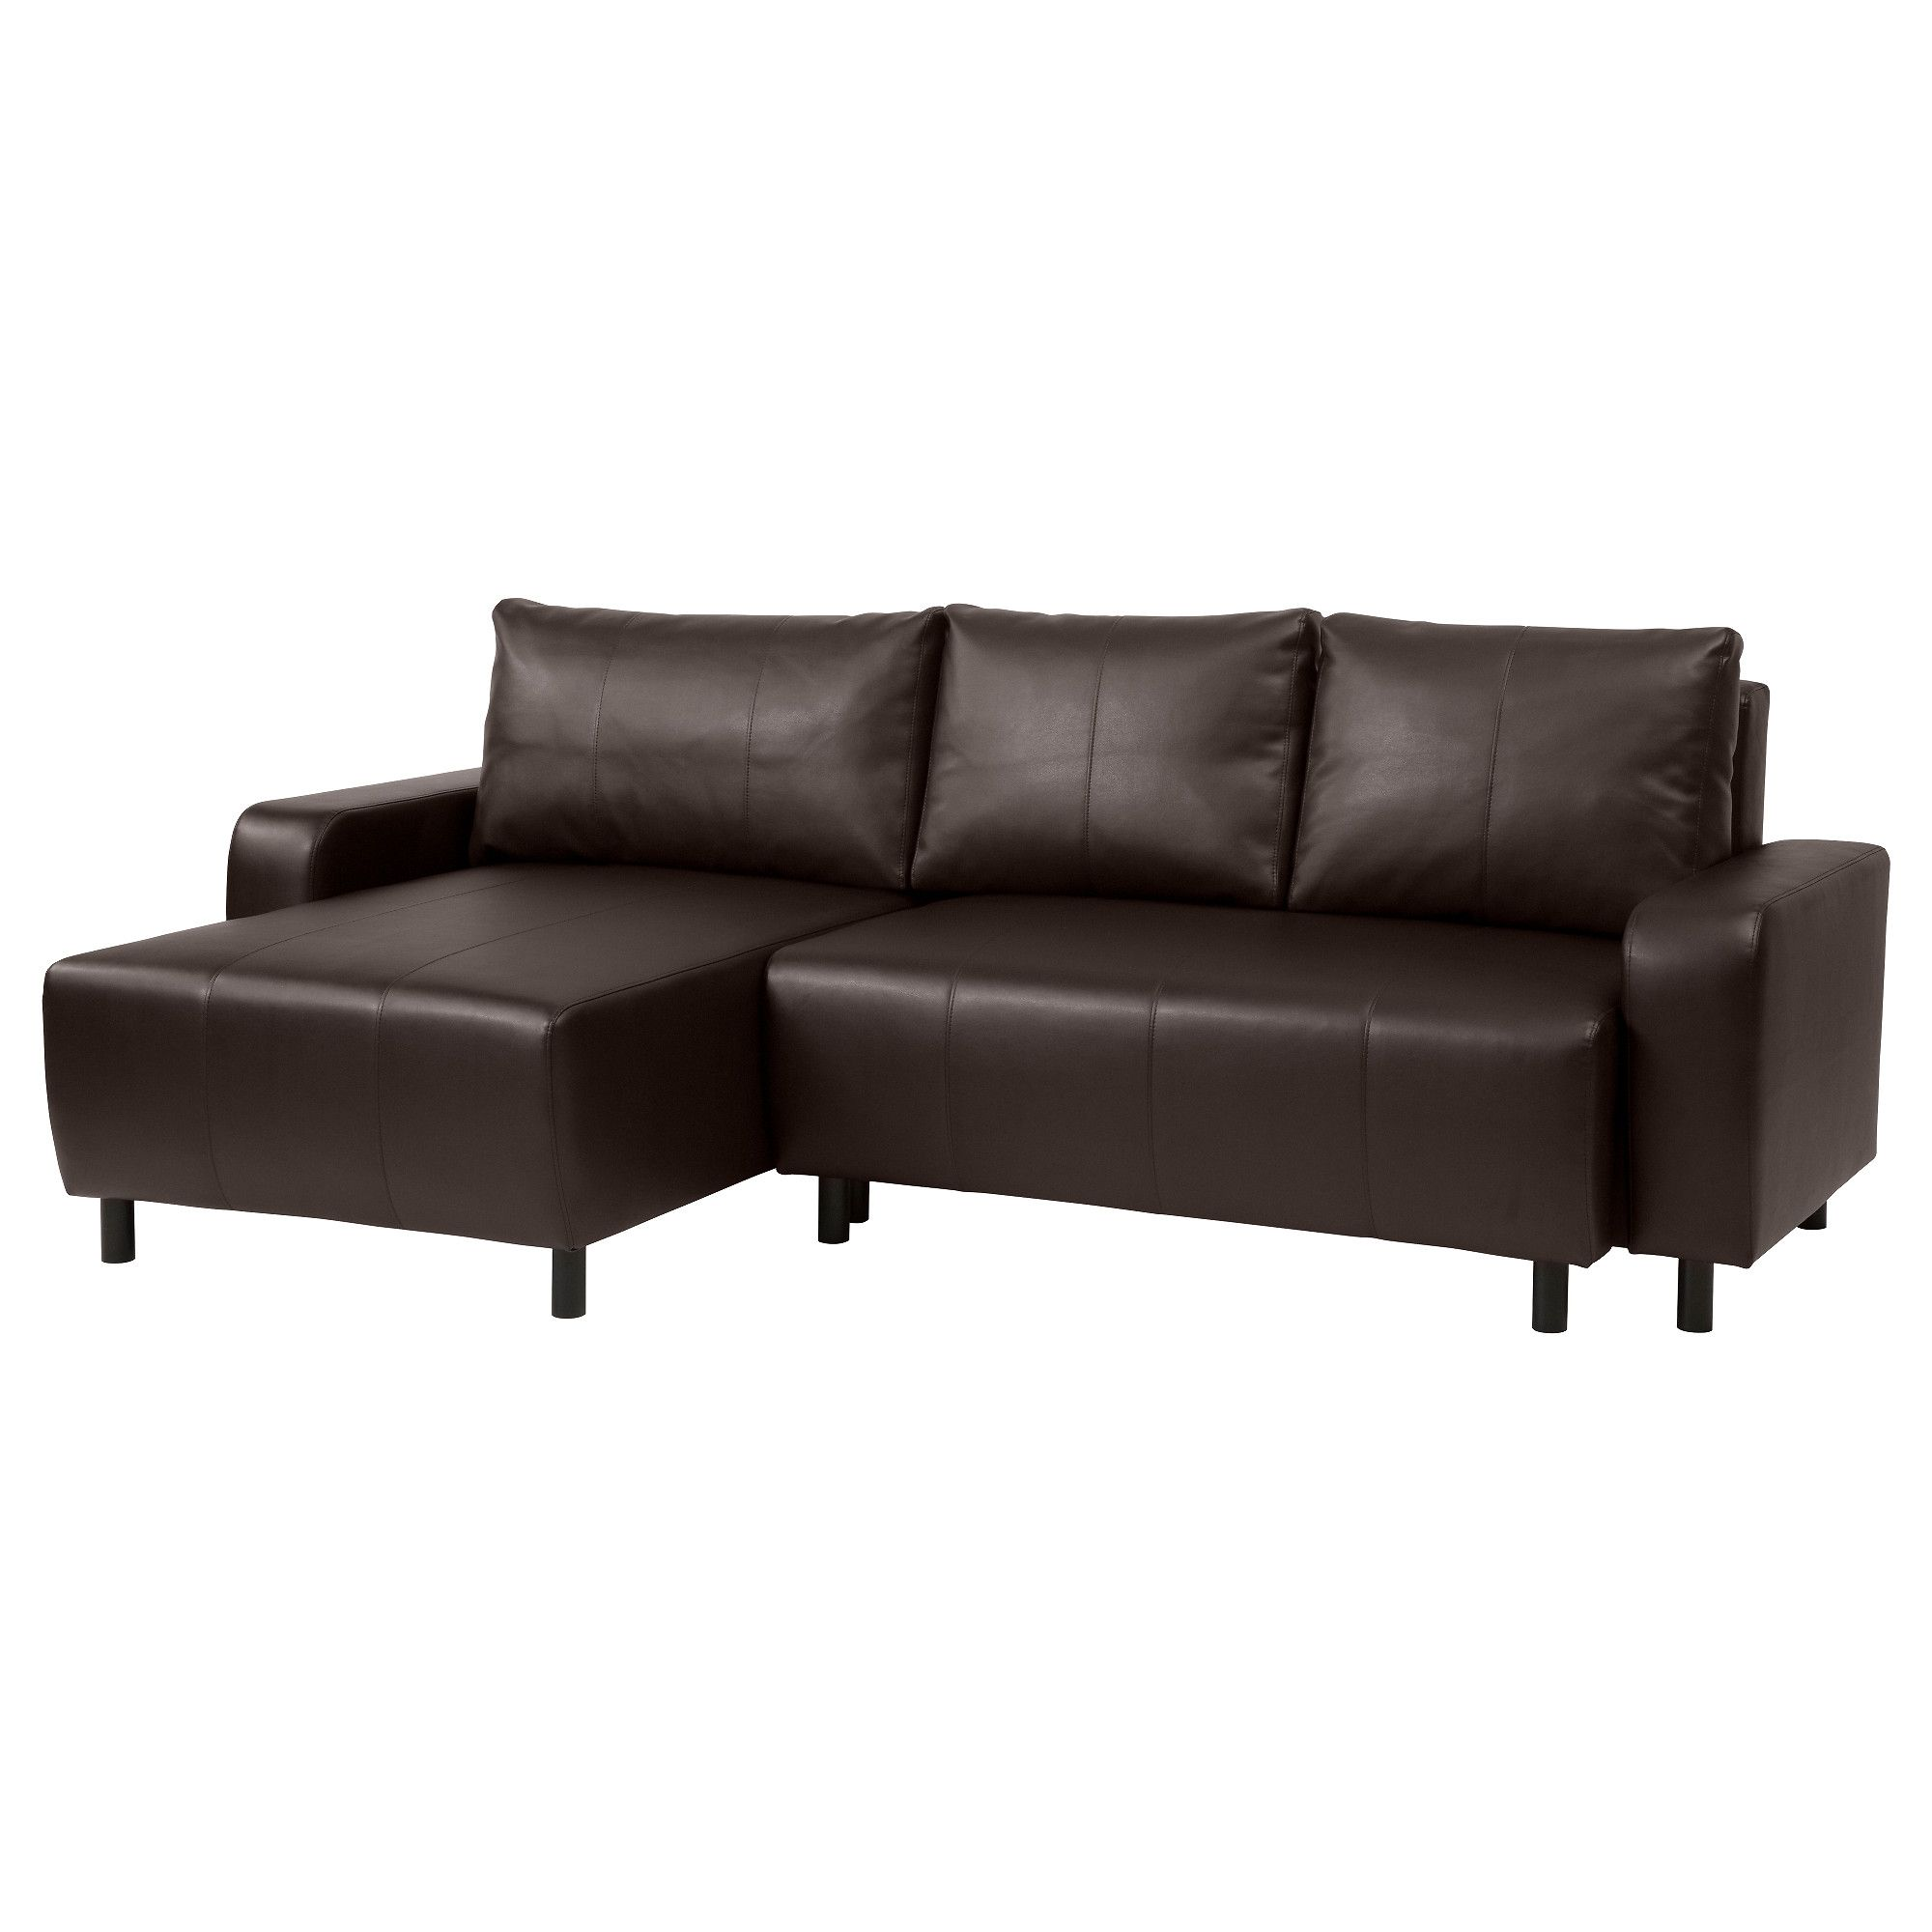 High Quality IKEA   DJURSBO, Sleeper Sectional, 3 Seat, Kimstad Brown, , You Can Place  The Chaise Section To The Left Or Right Of The Sofa, And Switch Whenever  You Like.